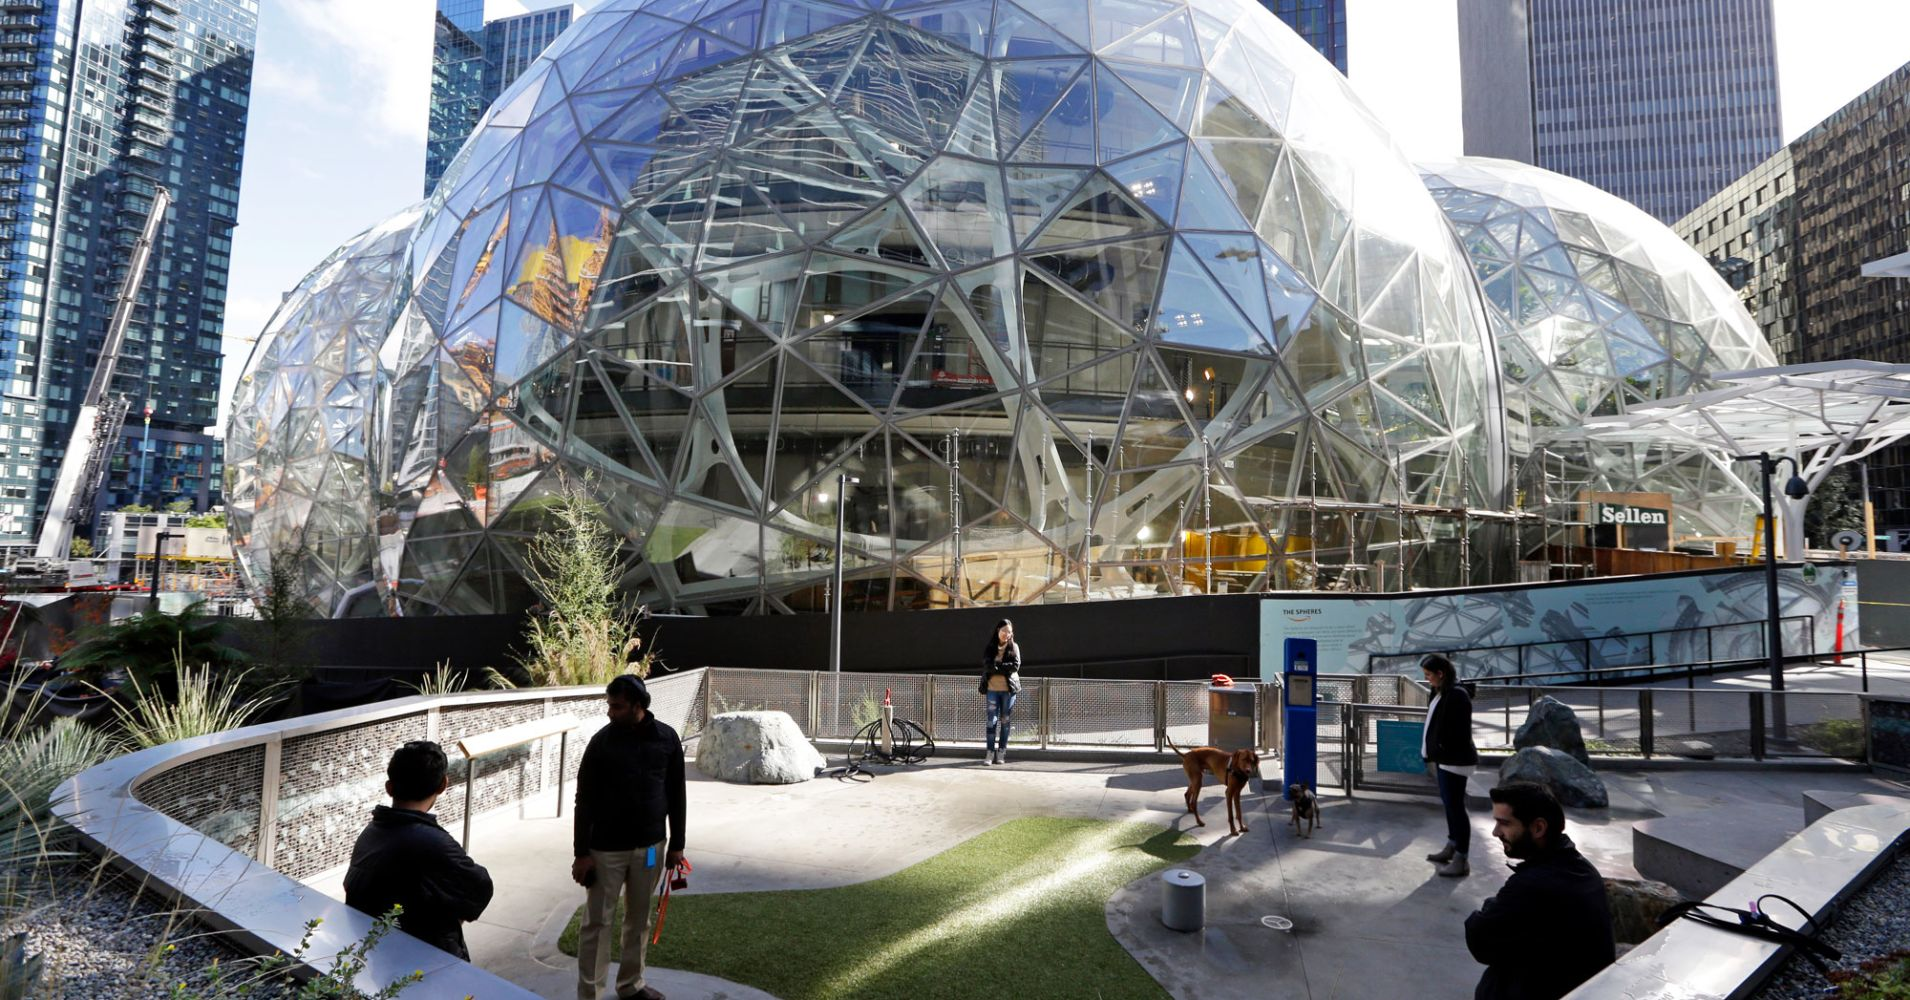 Amazon HQ2 may not happen in NY  after all, report says